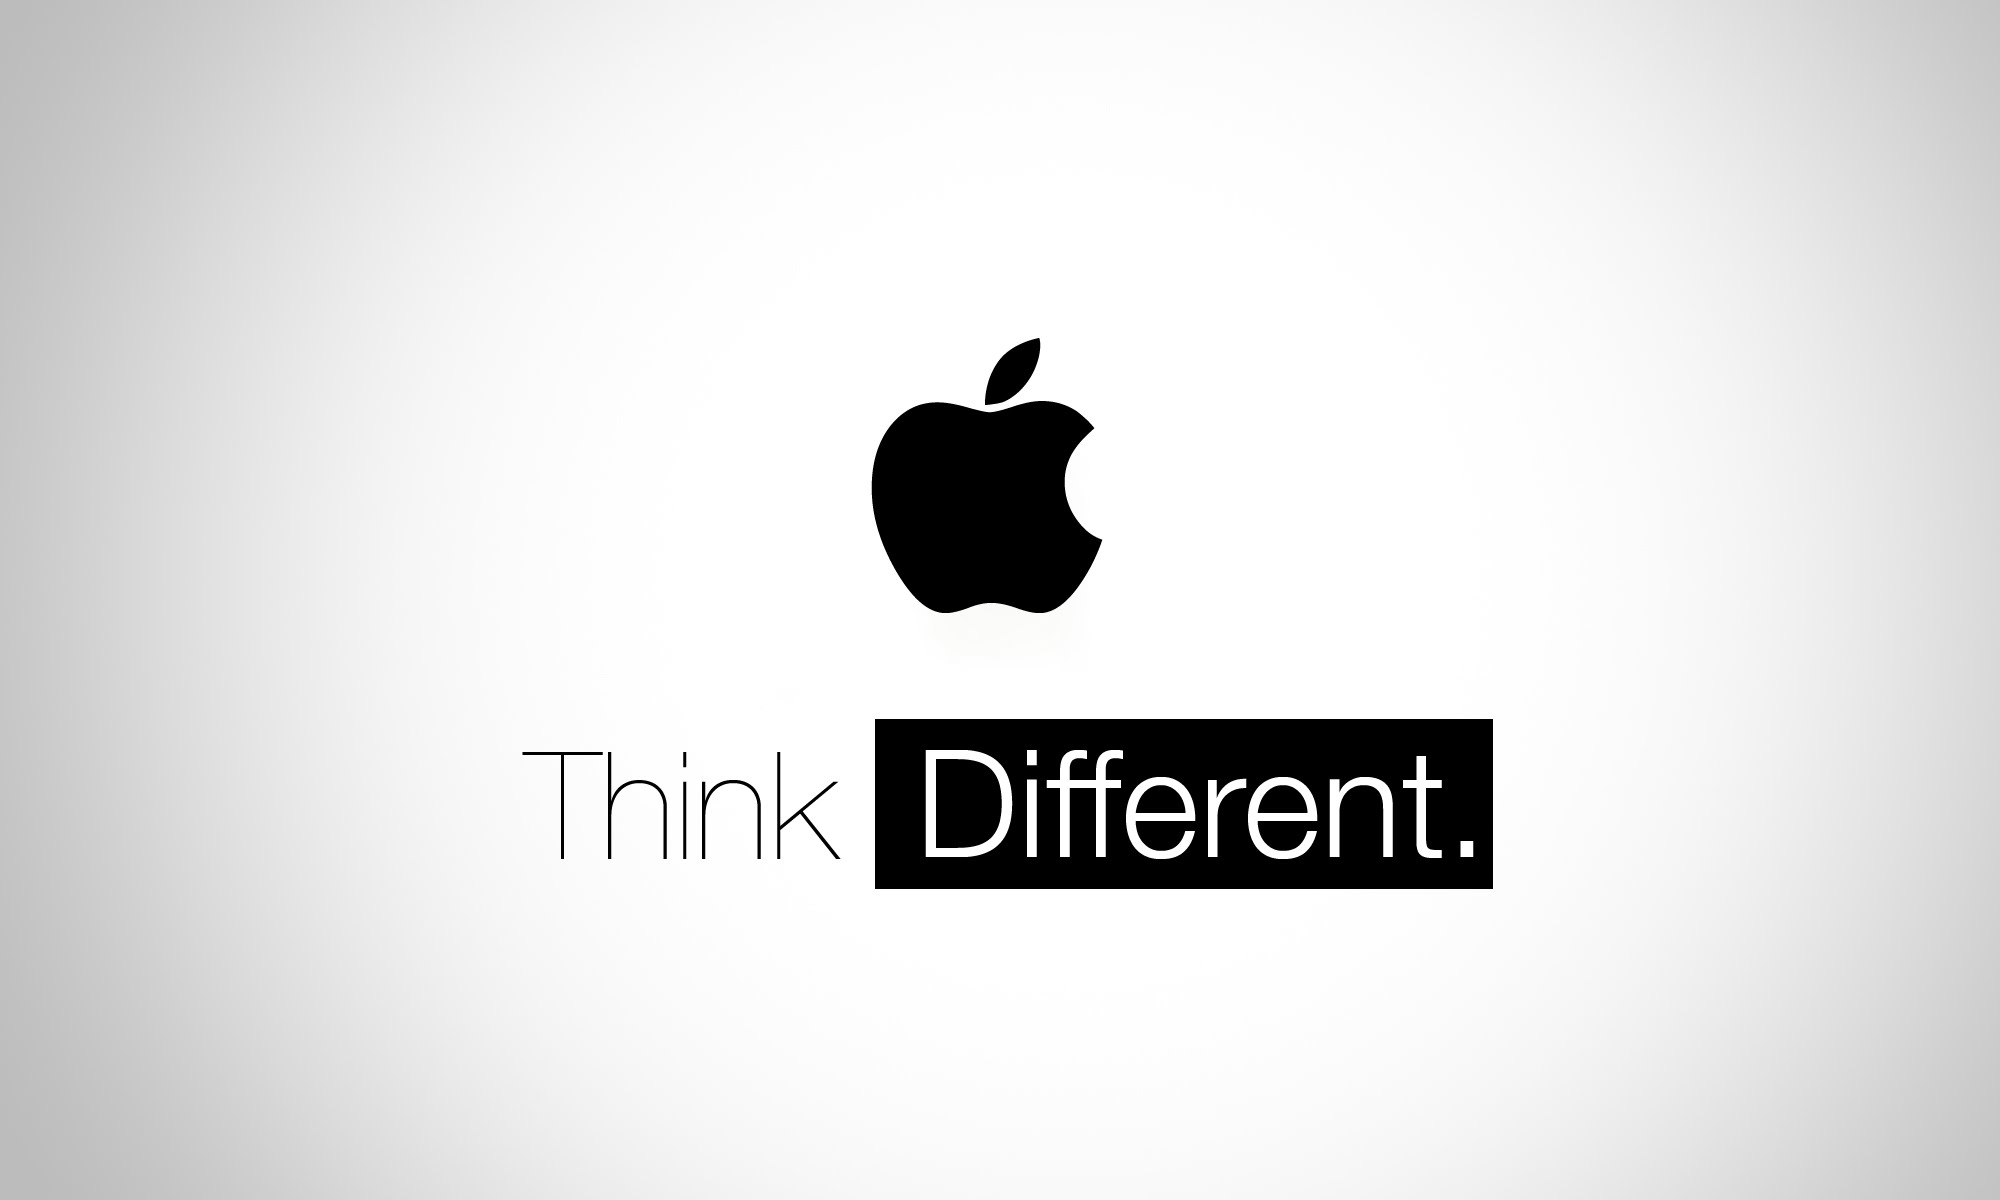 Learn from Apple – Think Different!